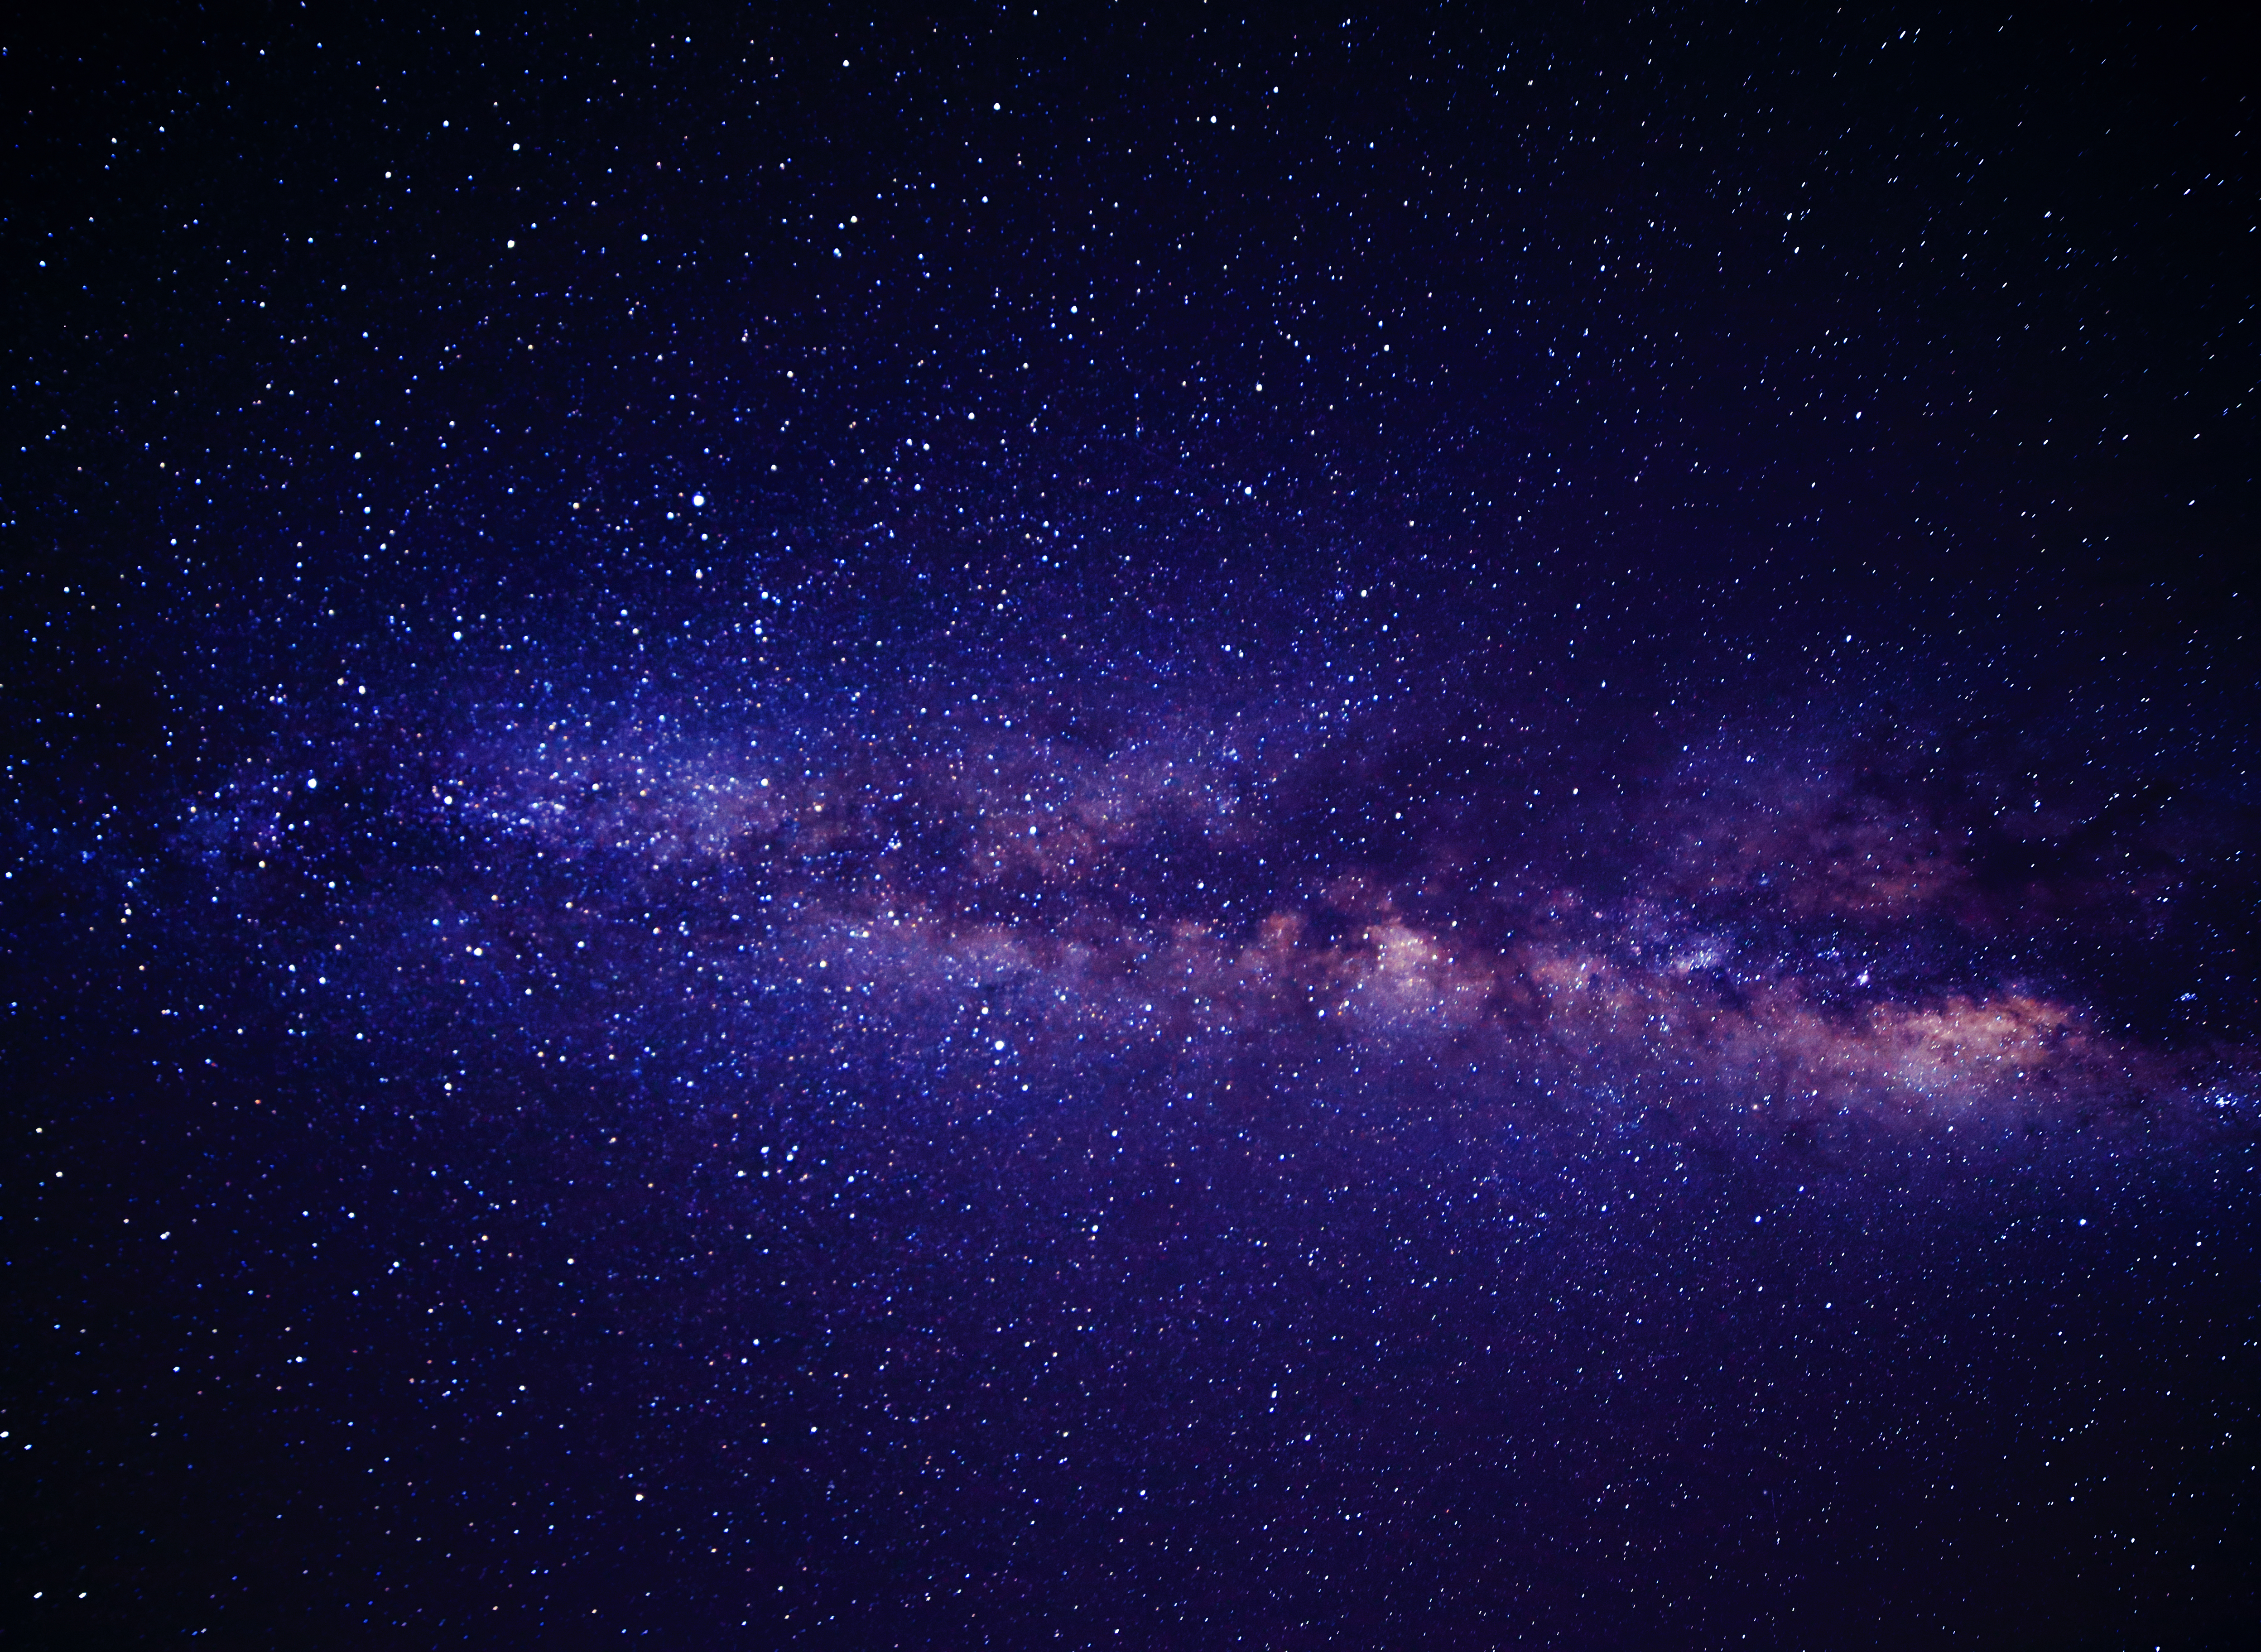 Milky way and starry night sky image free stock photo public free thecheapjerseys Choice Image